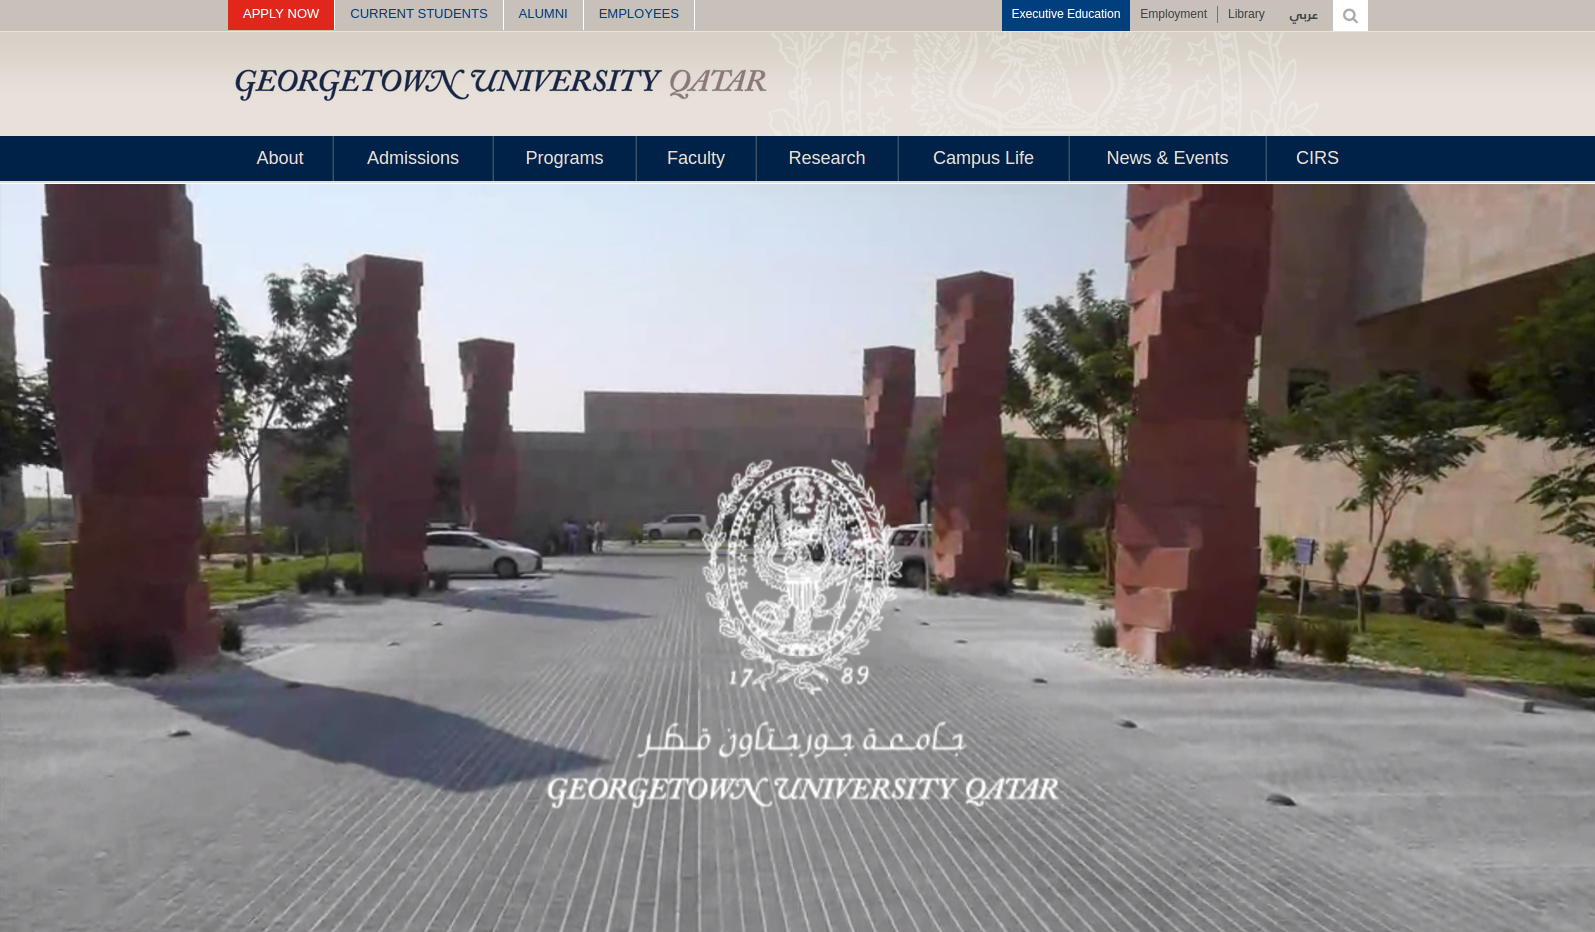 Georgetown University Qatar | Security, Insights, and